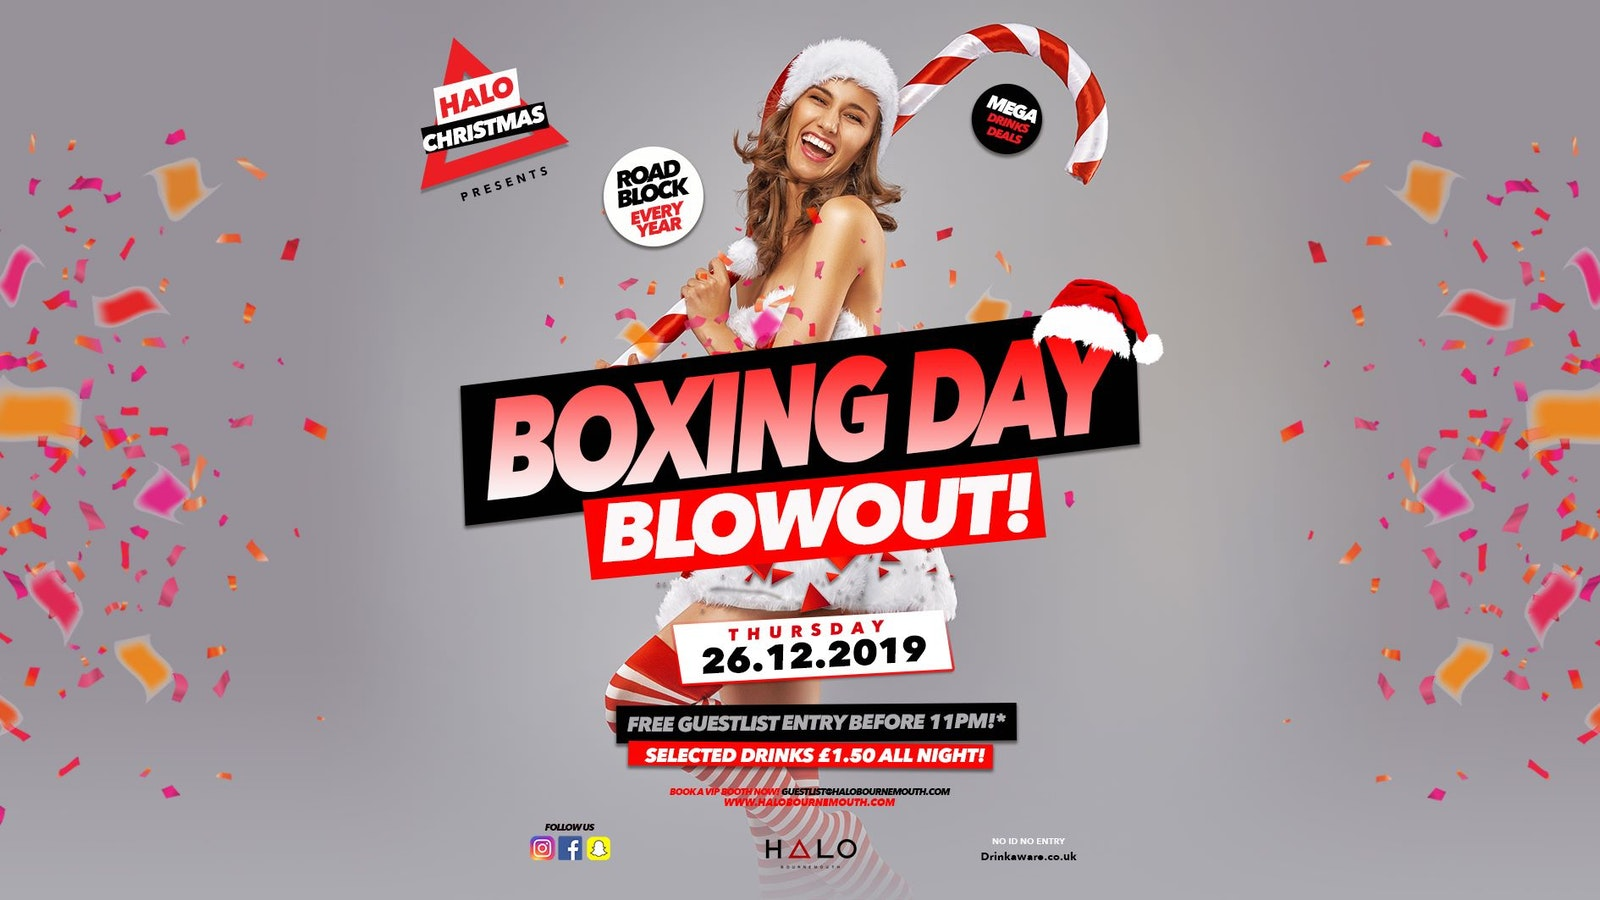 The Boxing Day Blowout